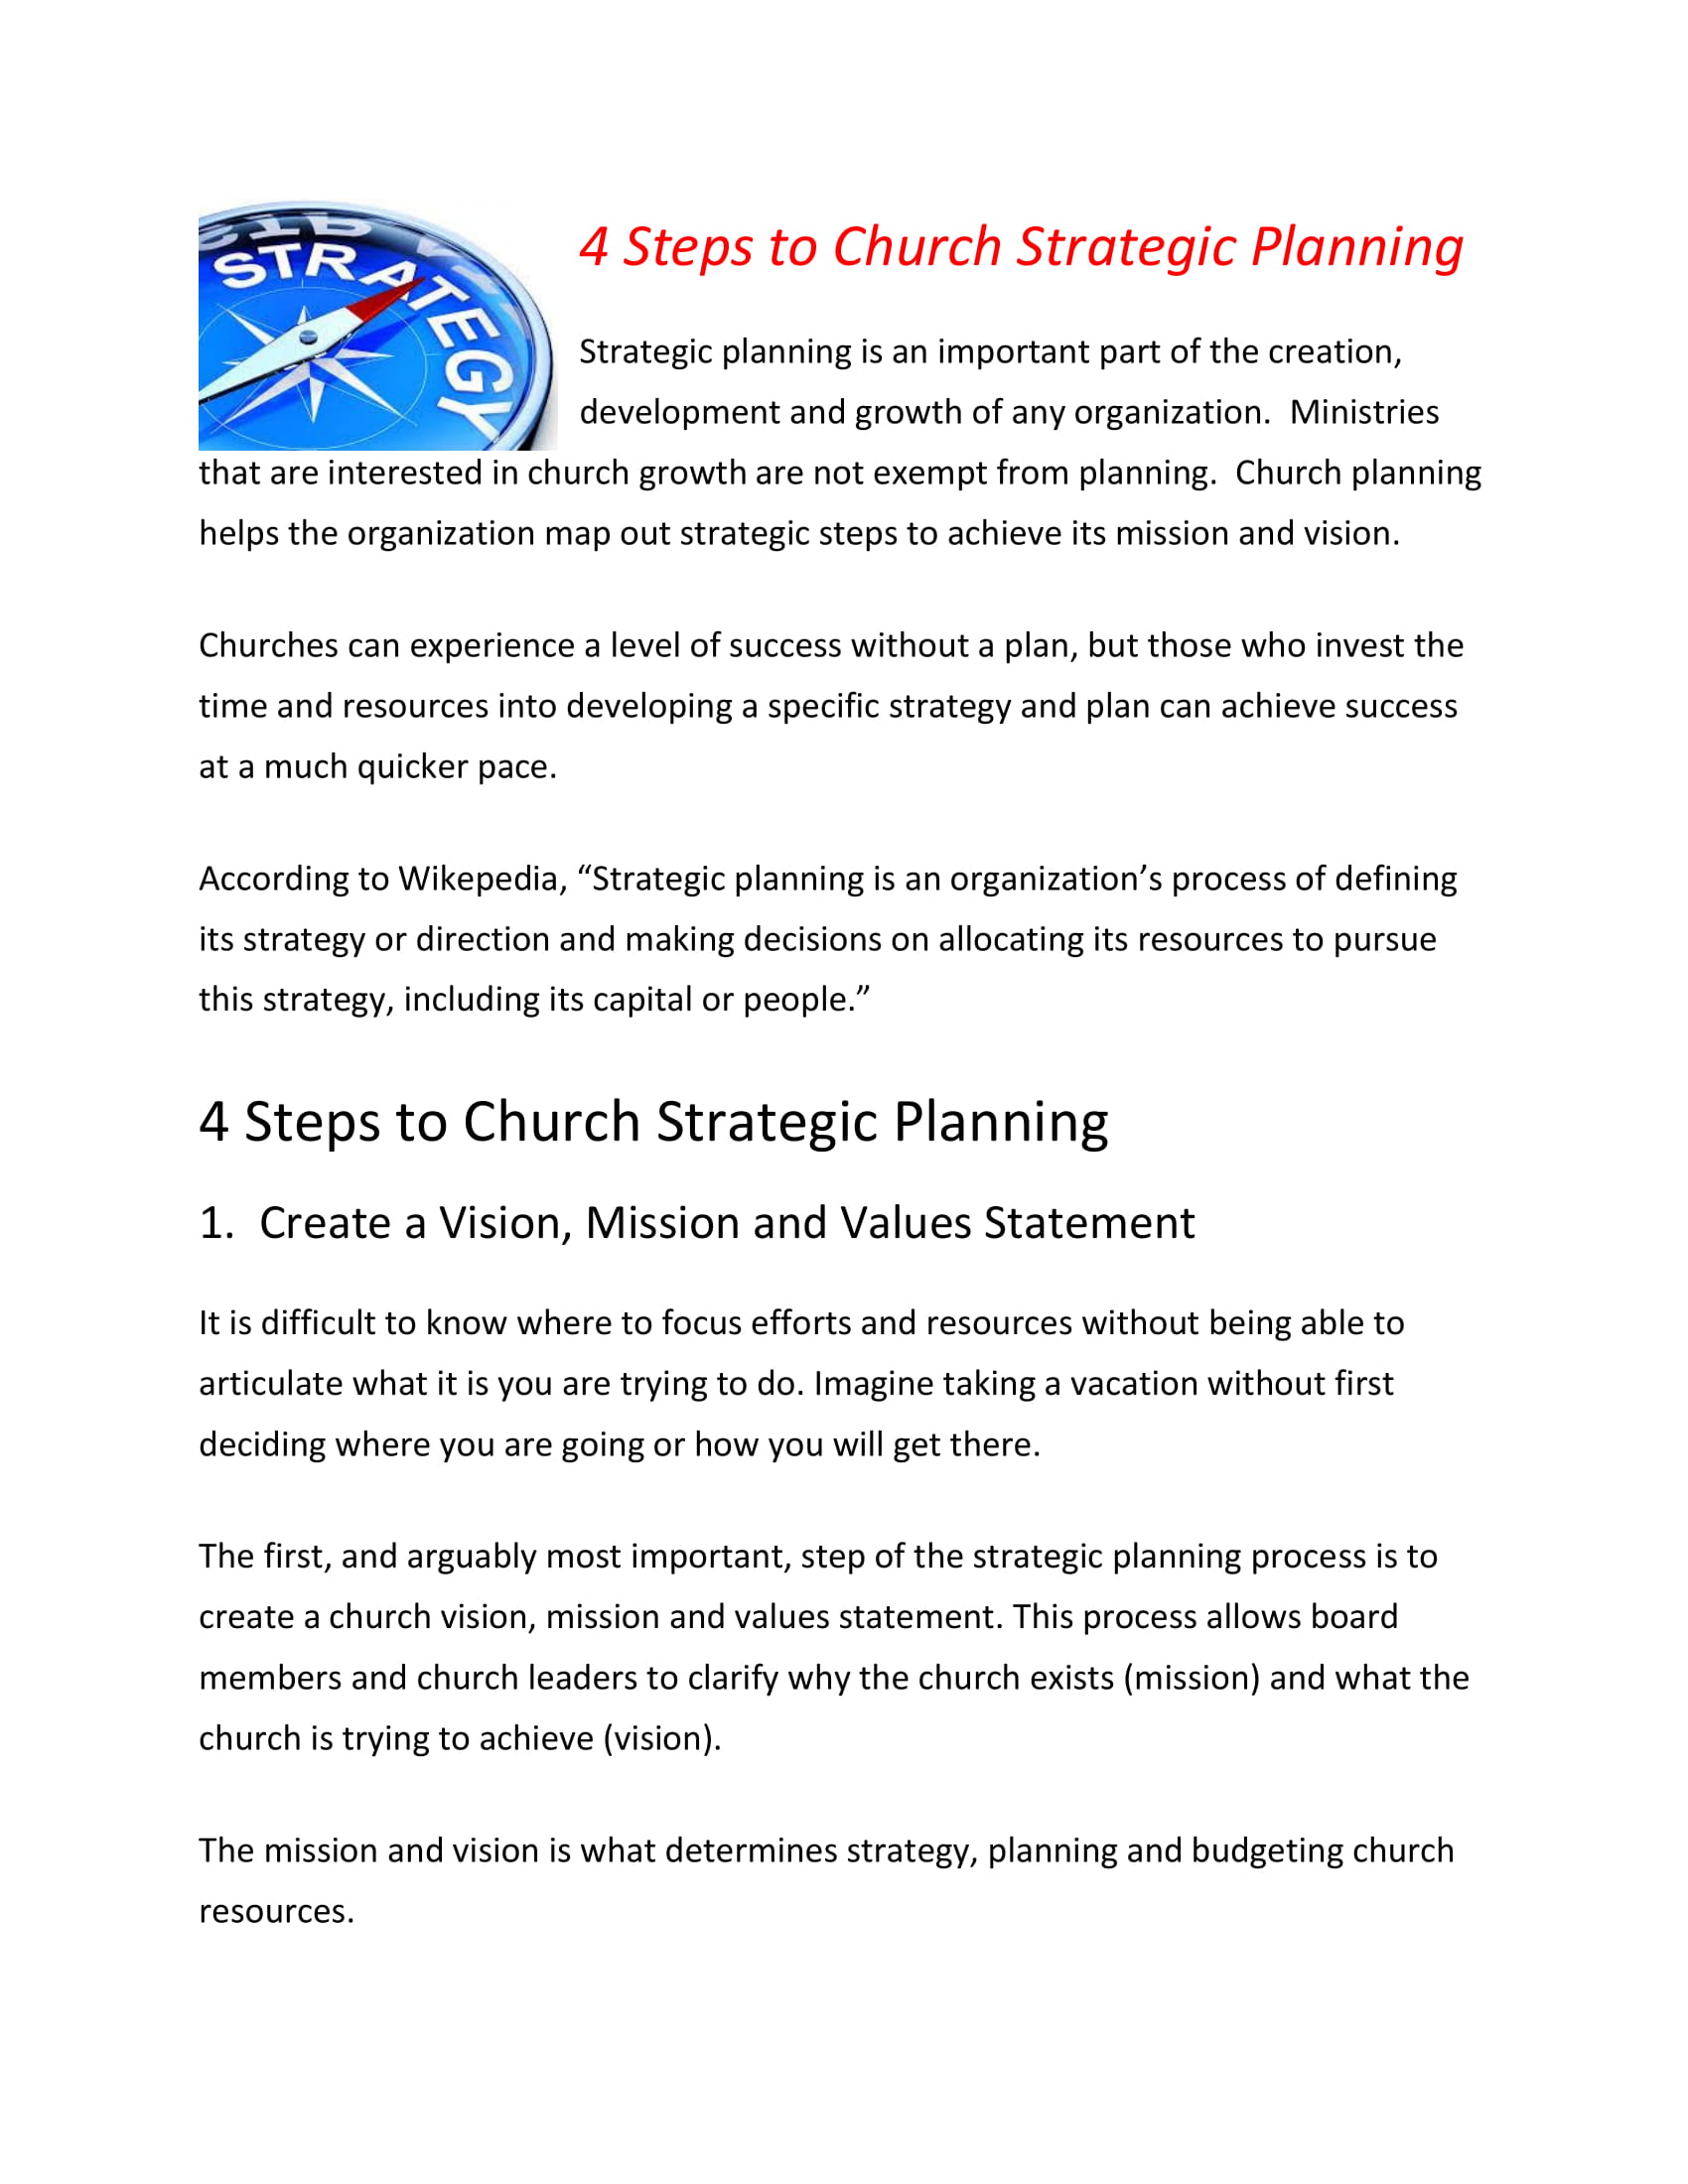 church strategic planning steps example 1